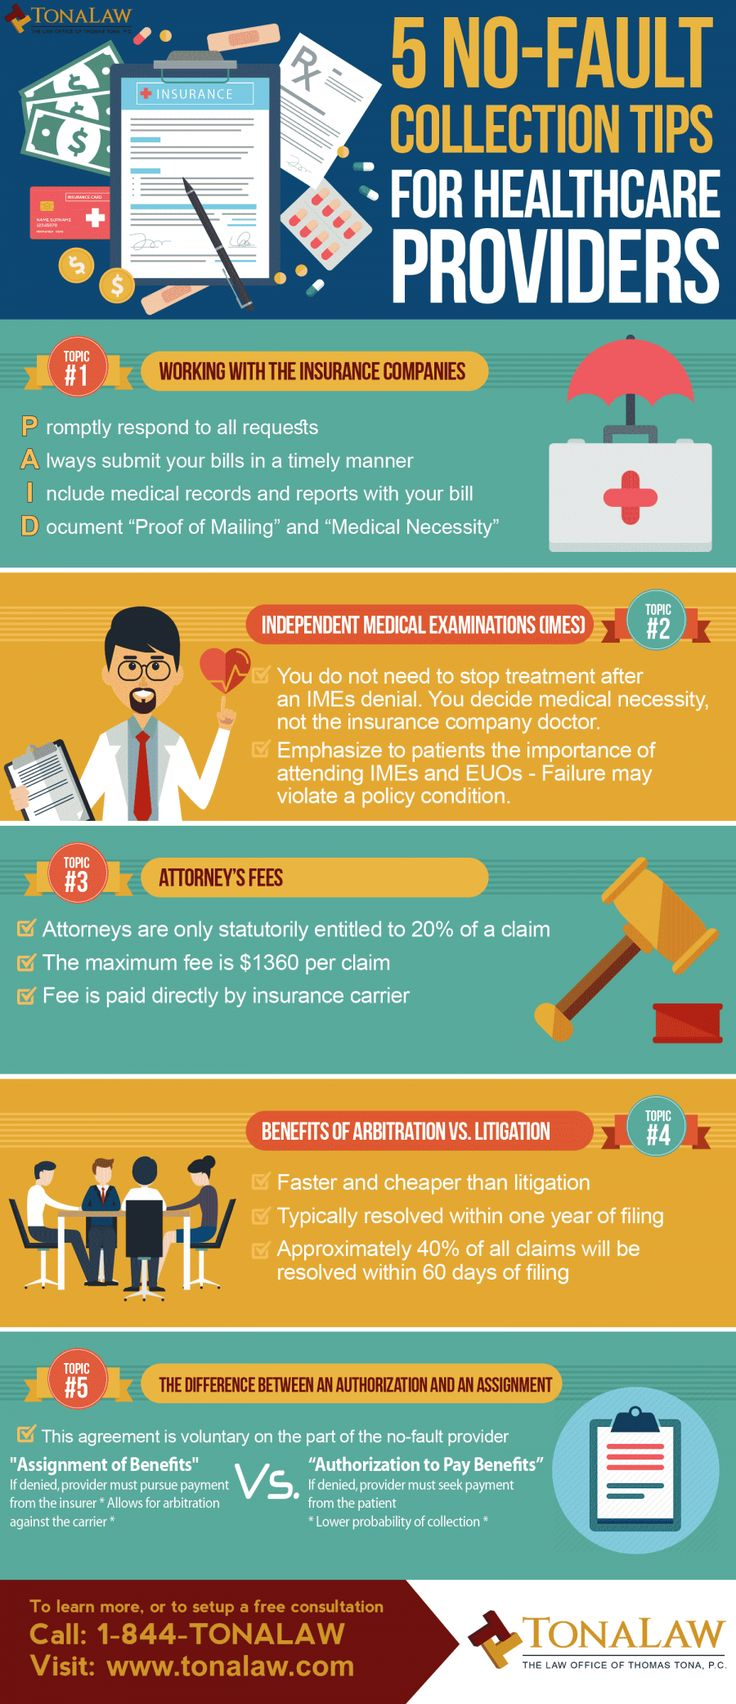 This infographic provides tips for healthcare providers to